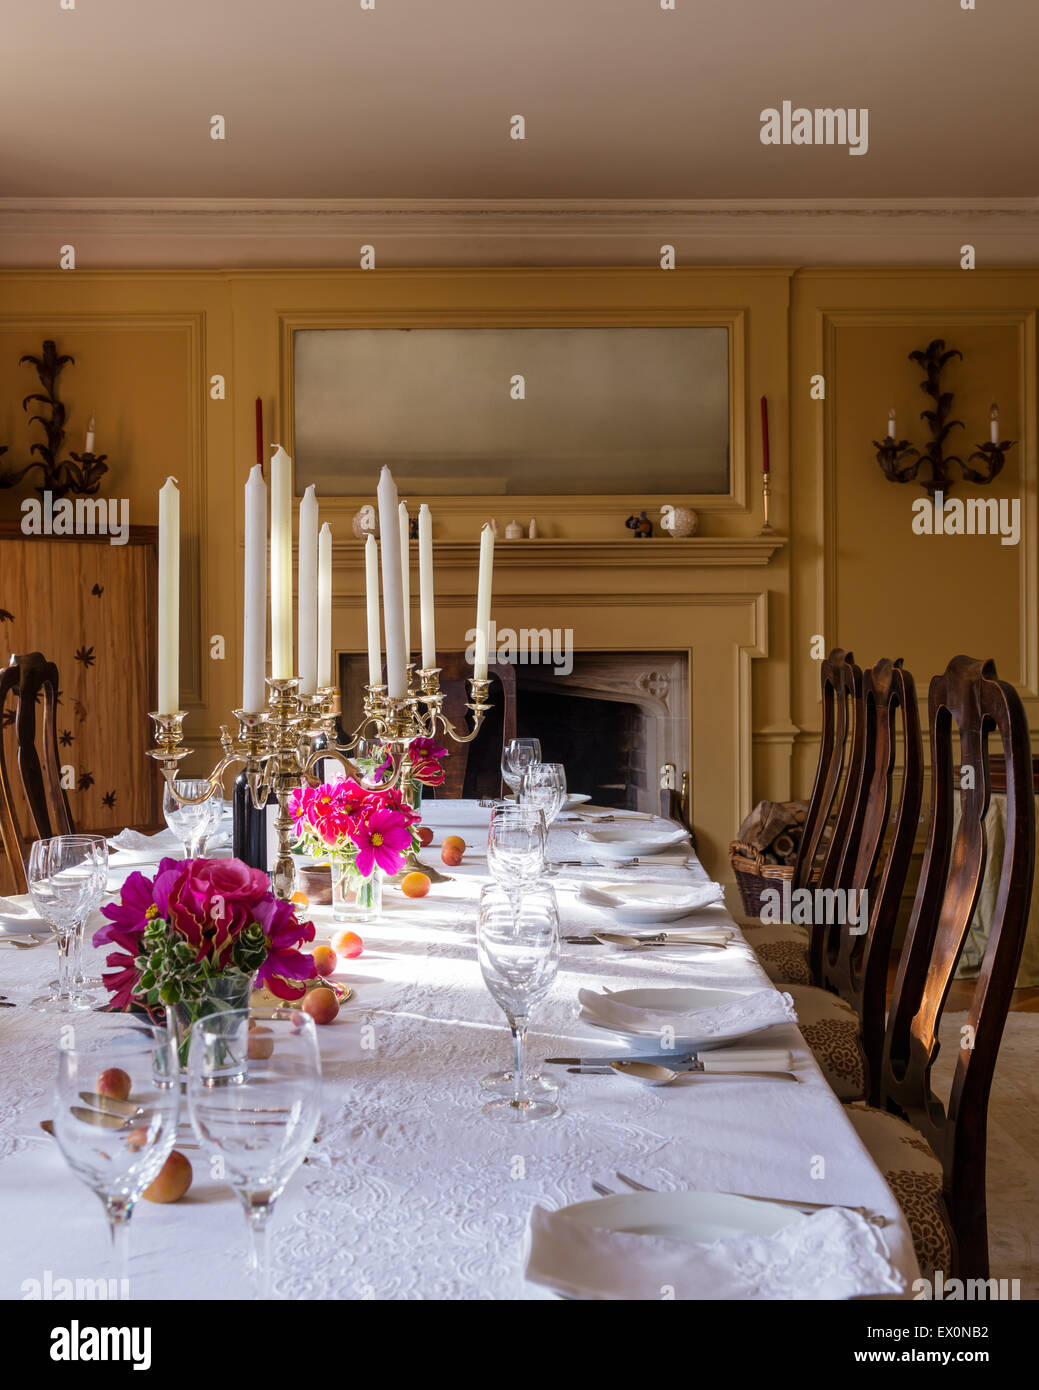 Candelabra on dining table with white cotton tablecloth and antique dining chairs - Stock Image